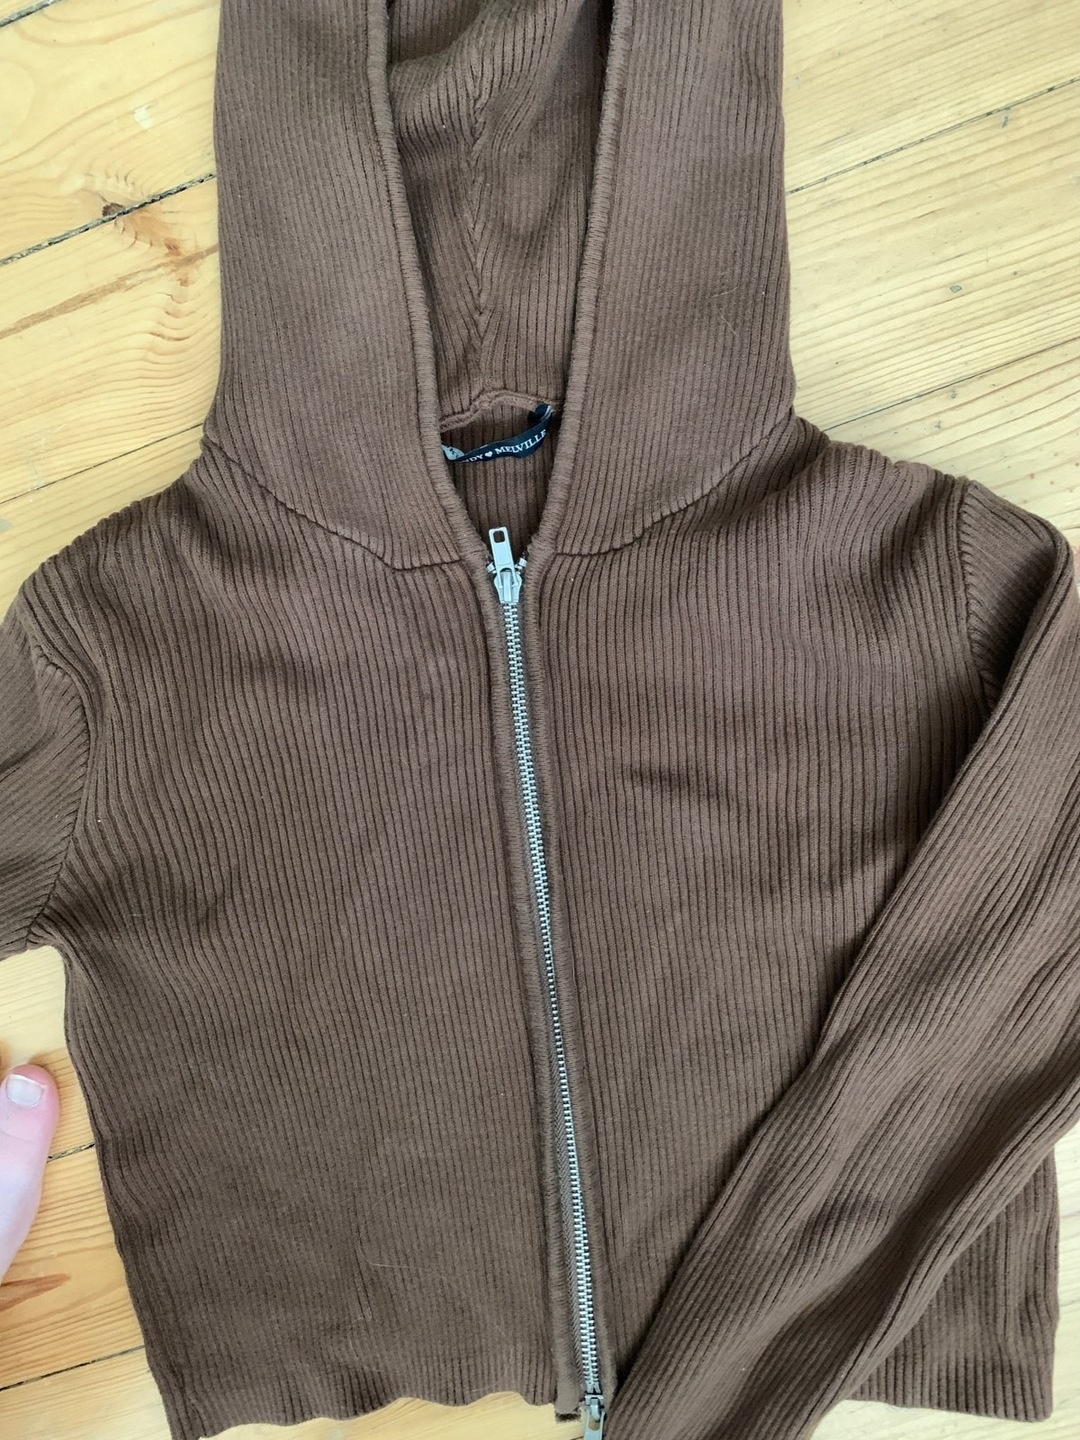 Women's jumpers & cardigans - BRANDY MELVILLE photo 3